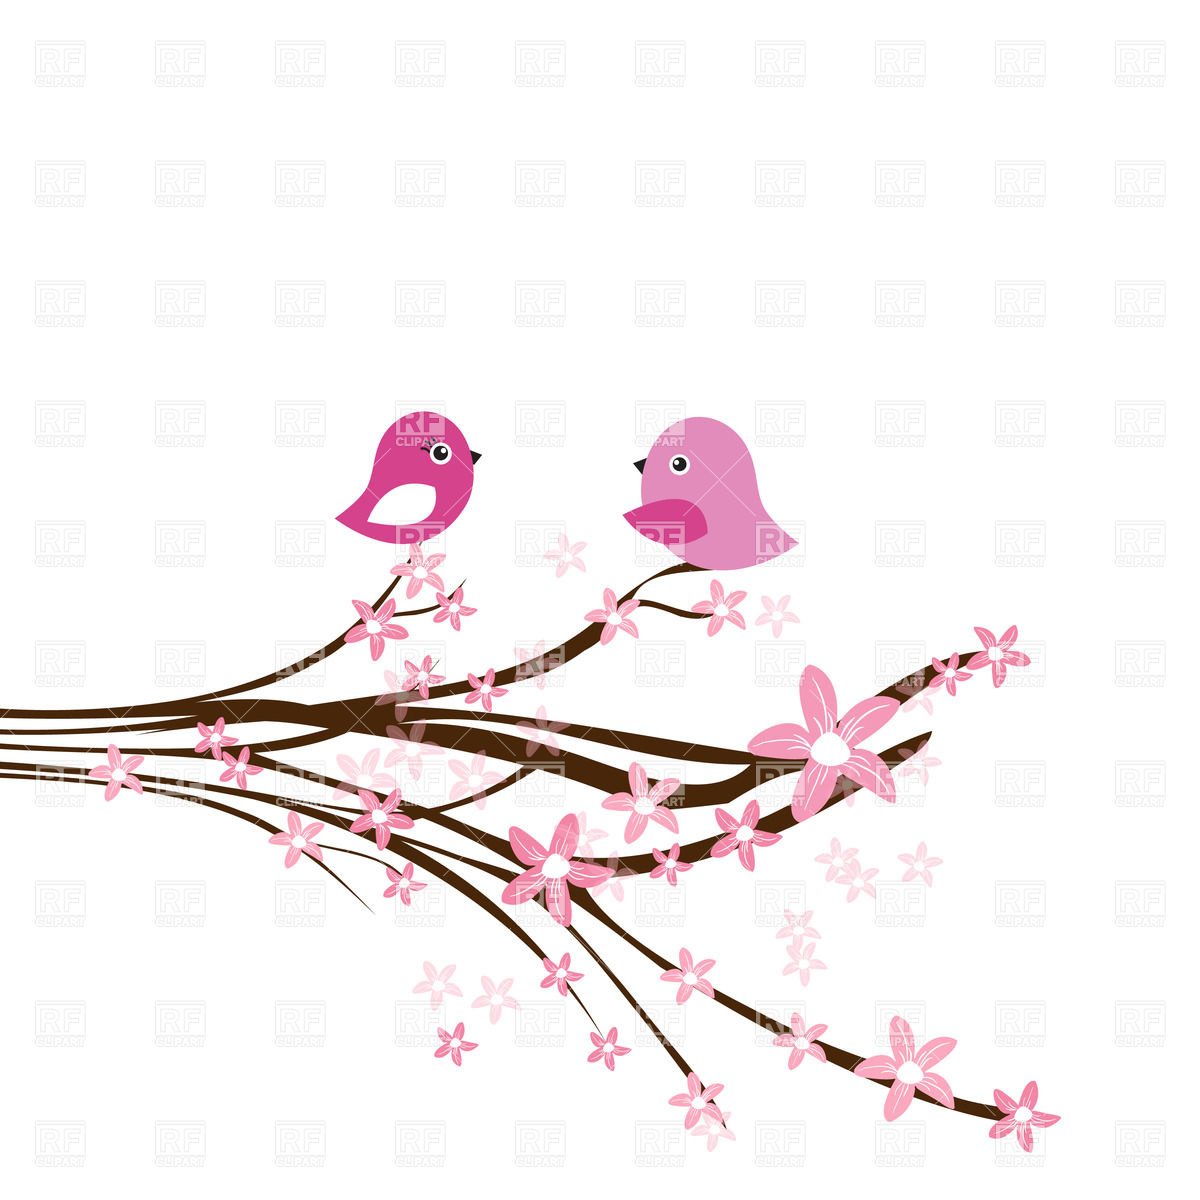 Cherry Blossom Branch With Two Cute Pink Birds Download Royalty Free